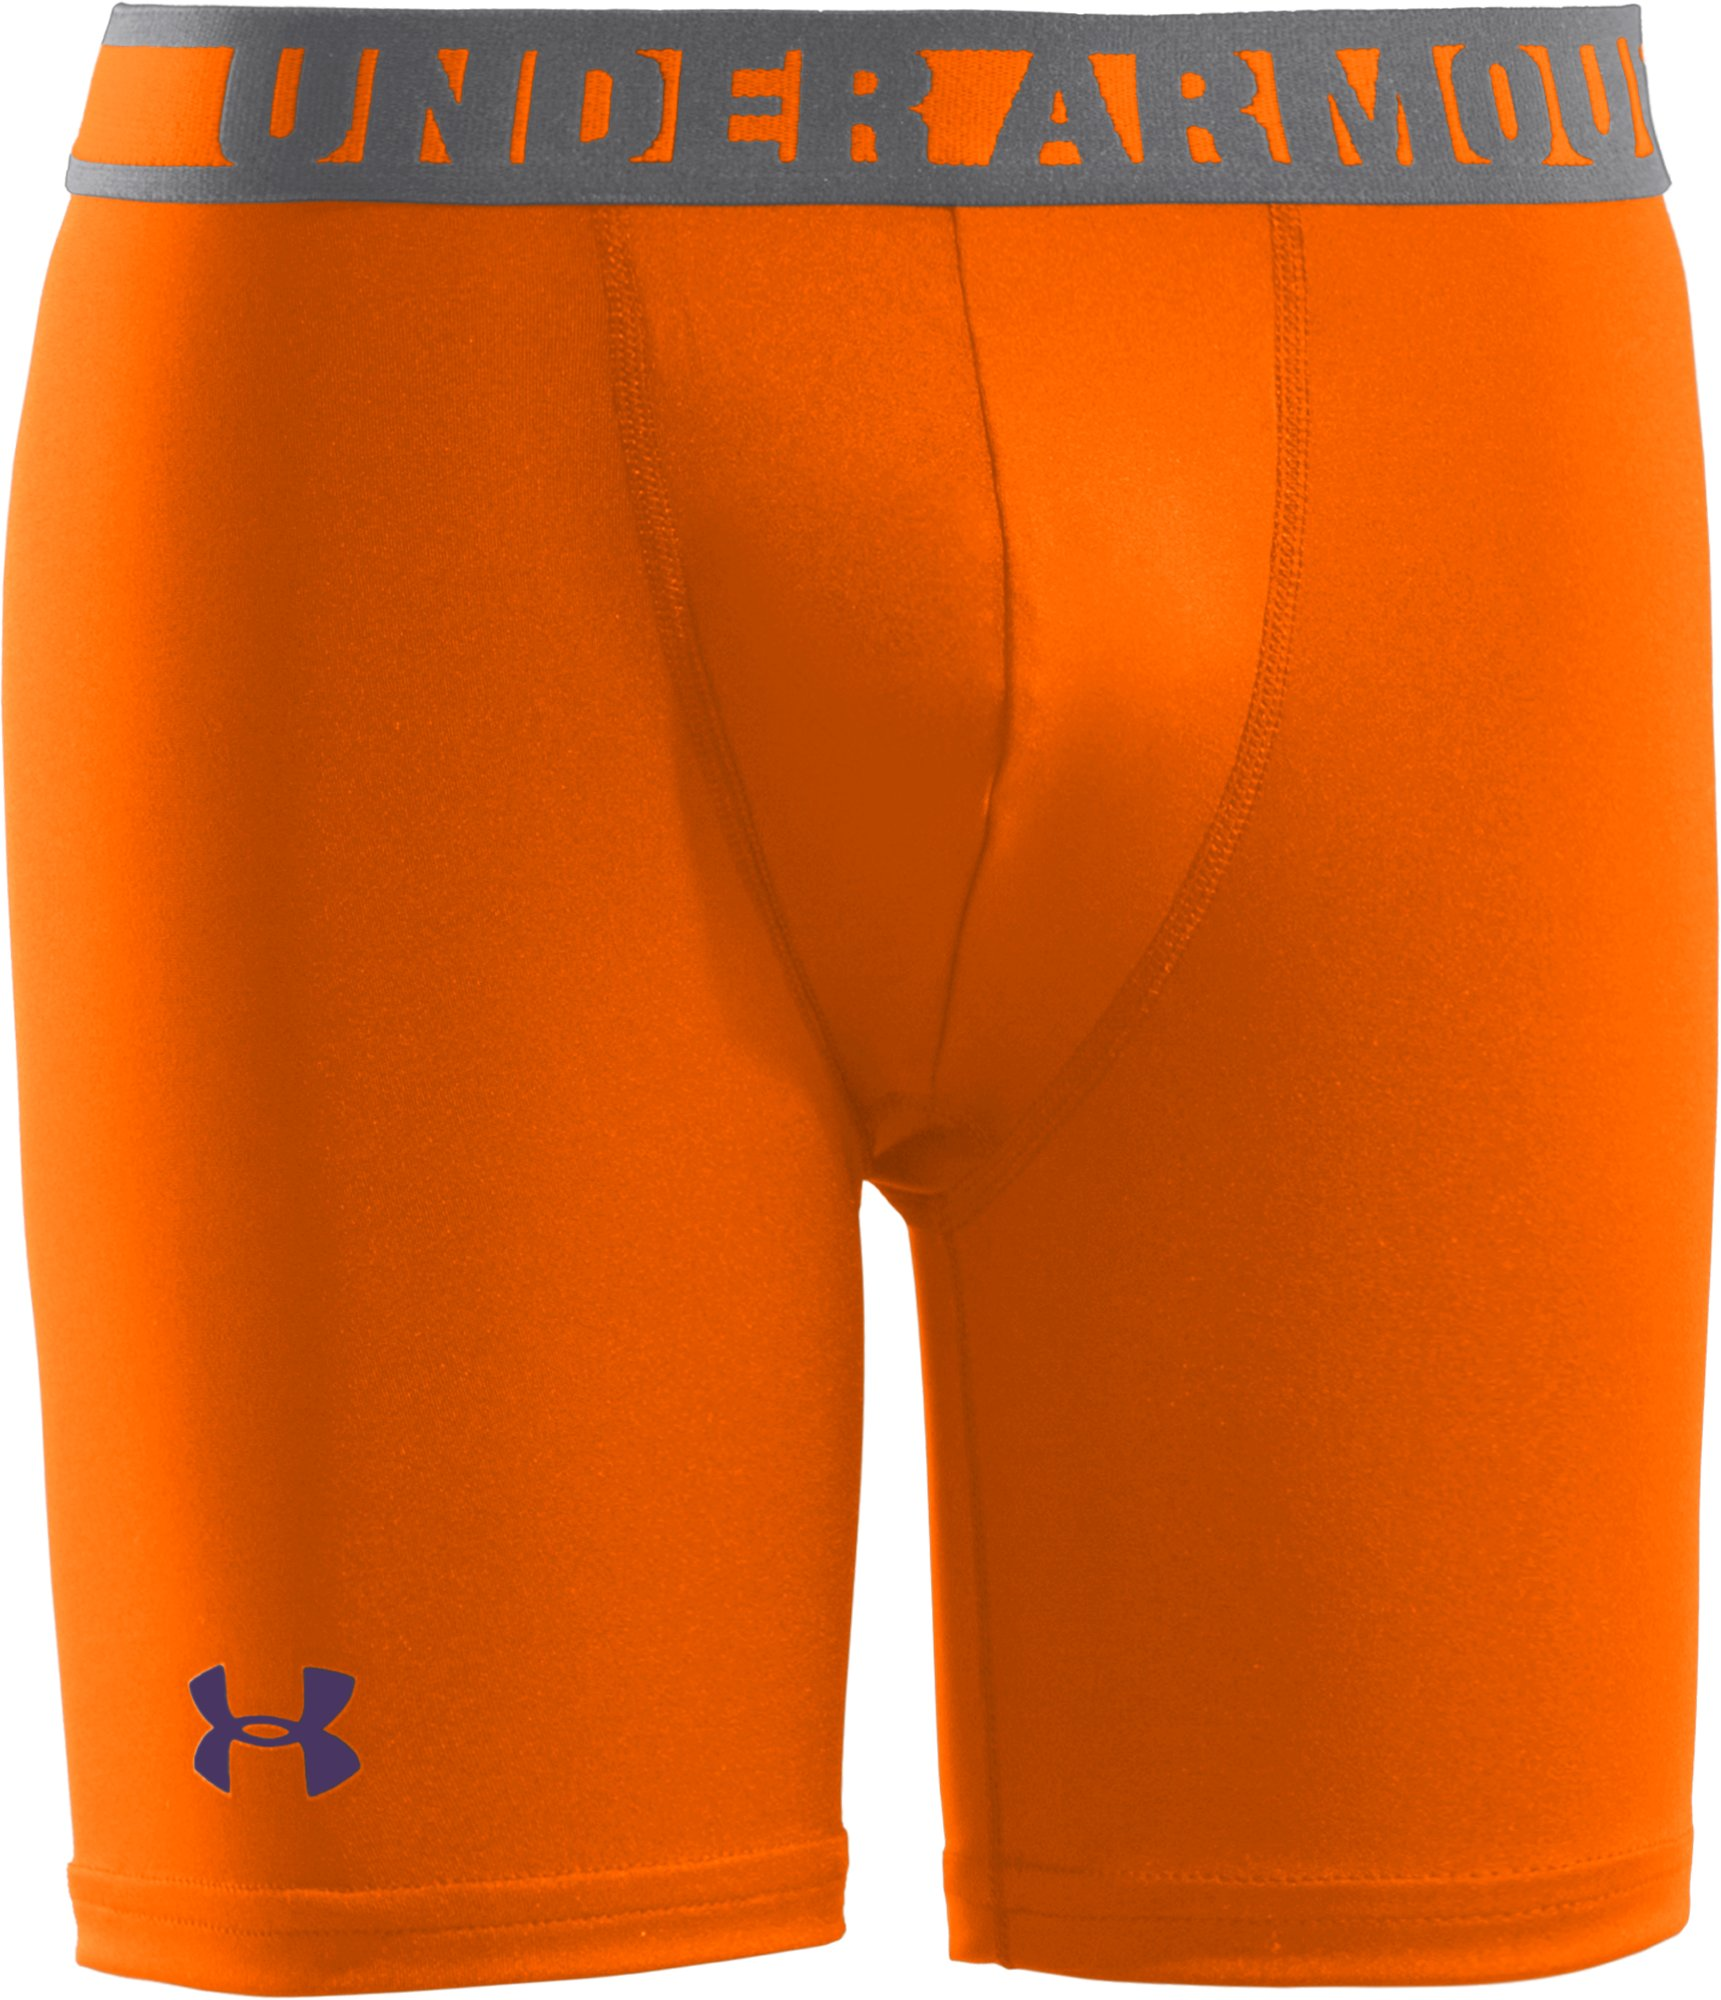 "Boys' HeatGear® Sonic 4"" Fitted Shorts, Blaze Orange, zoomed image"